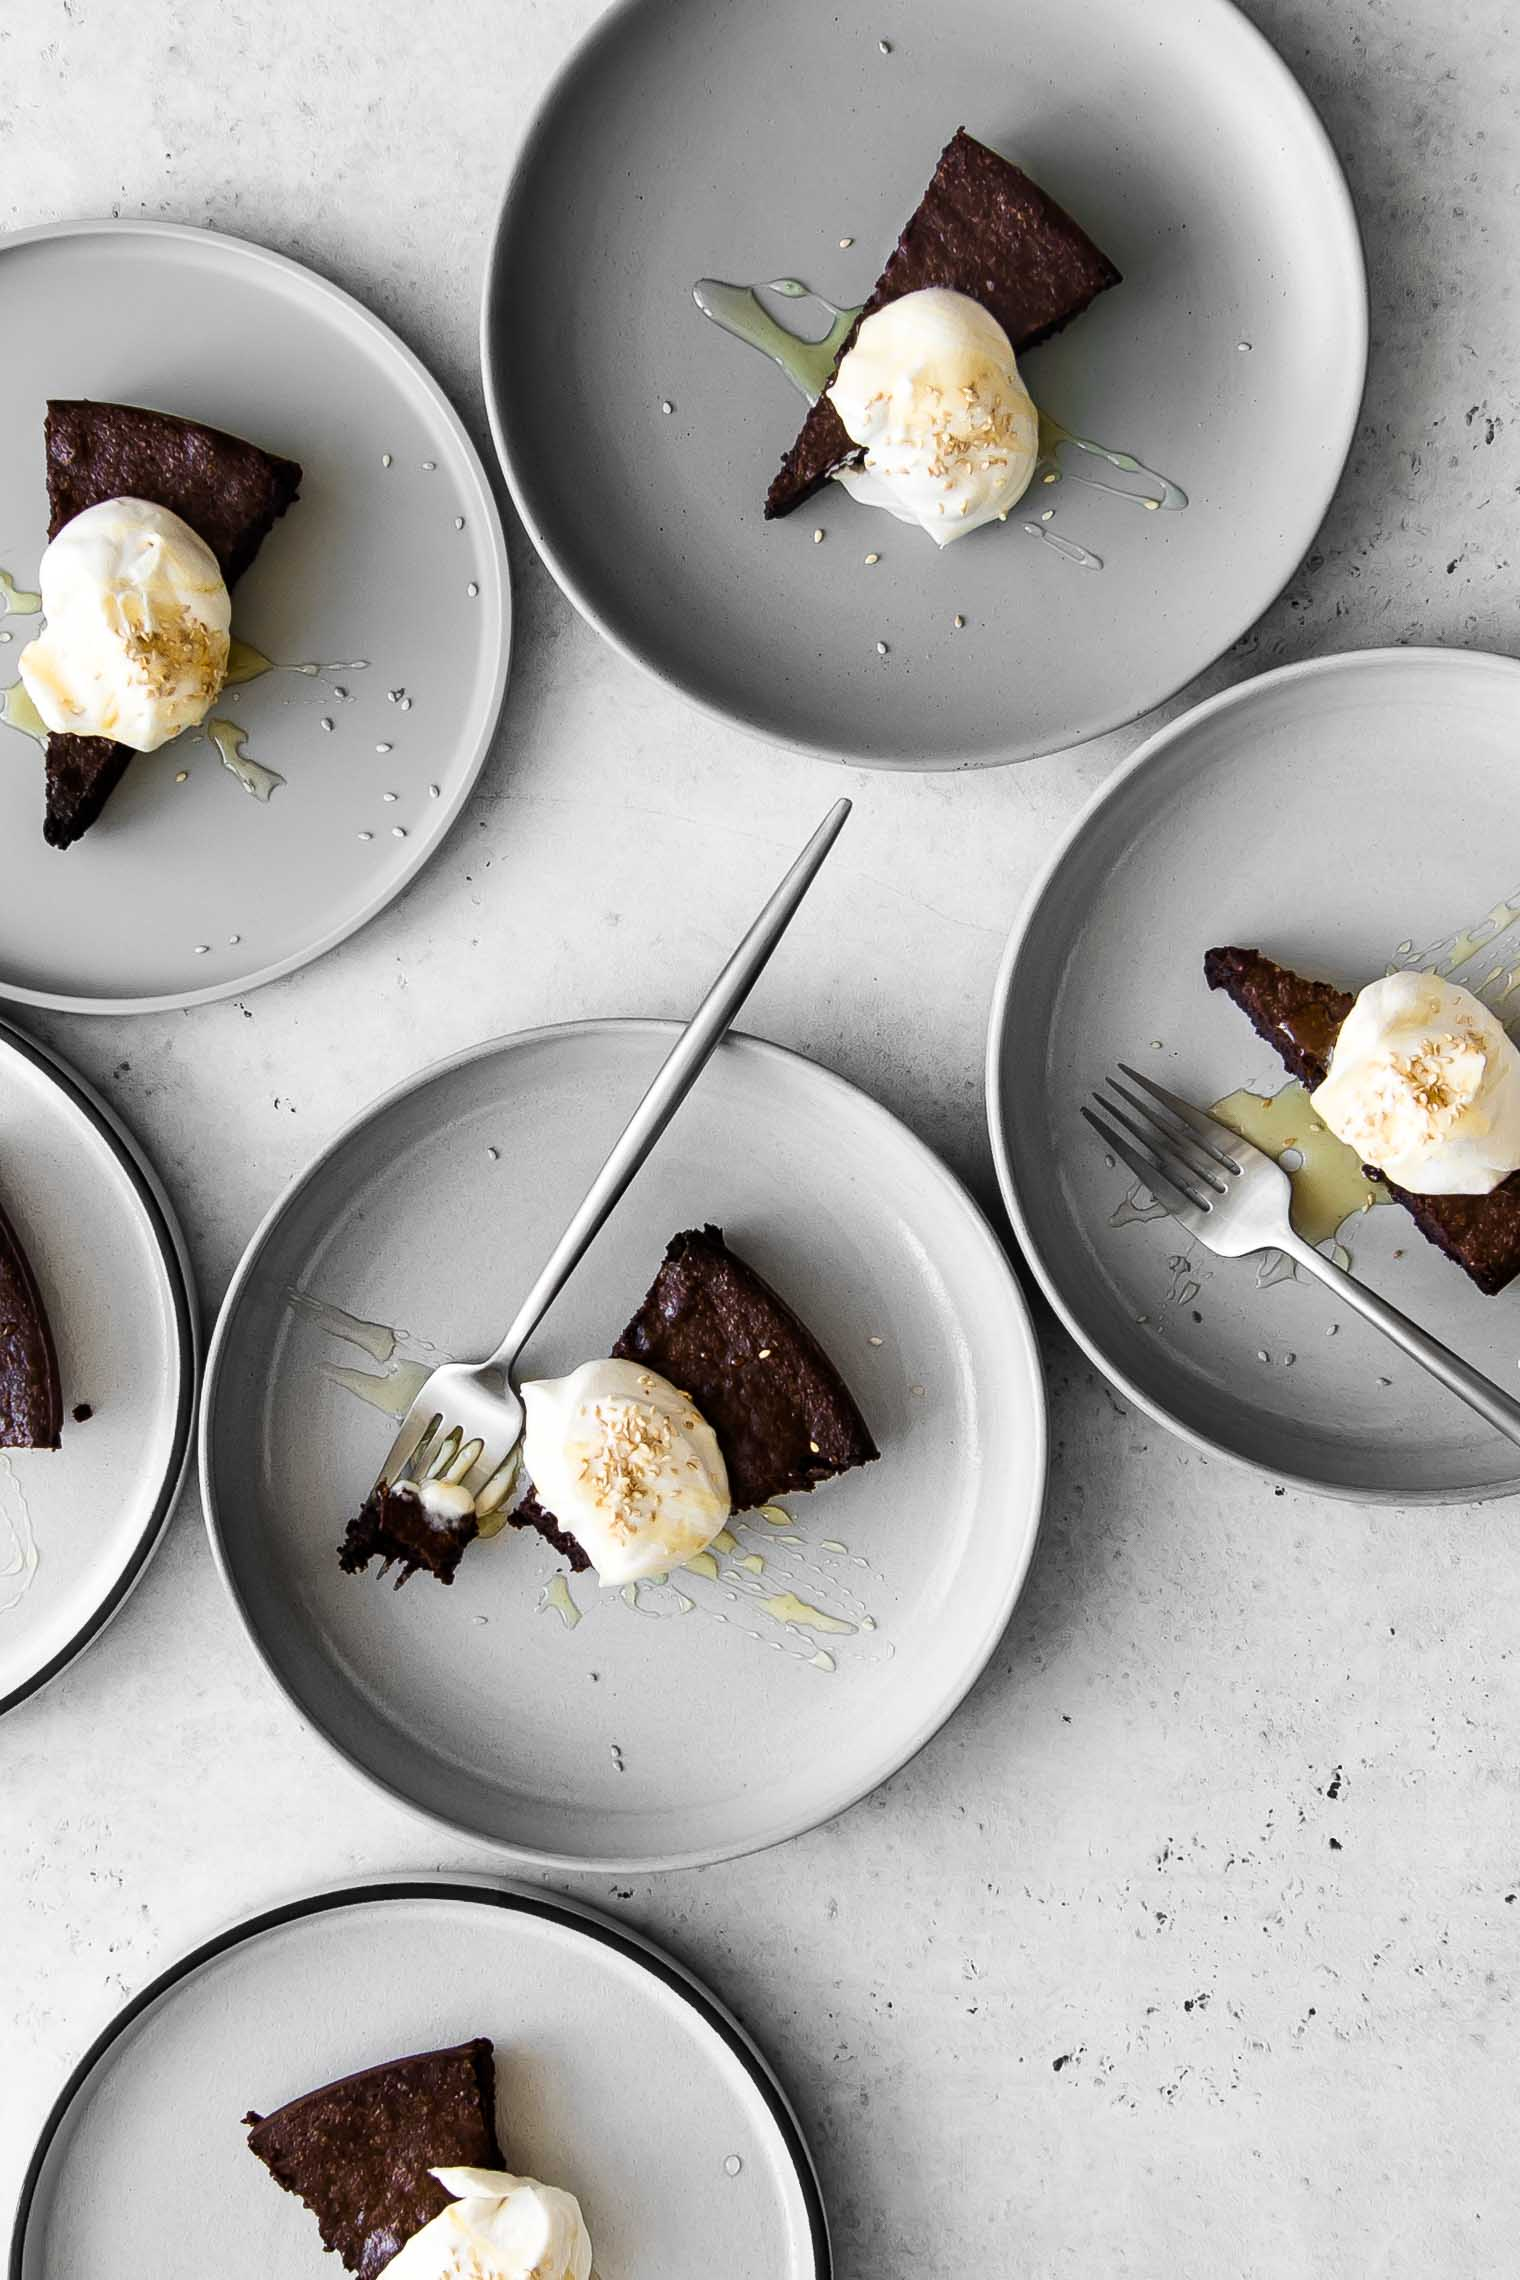 Six plates of flourless chocolate cake with whipped cream and sesame seeds